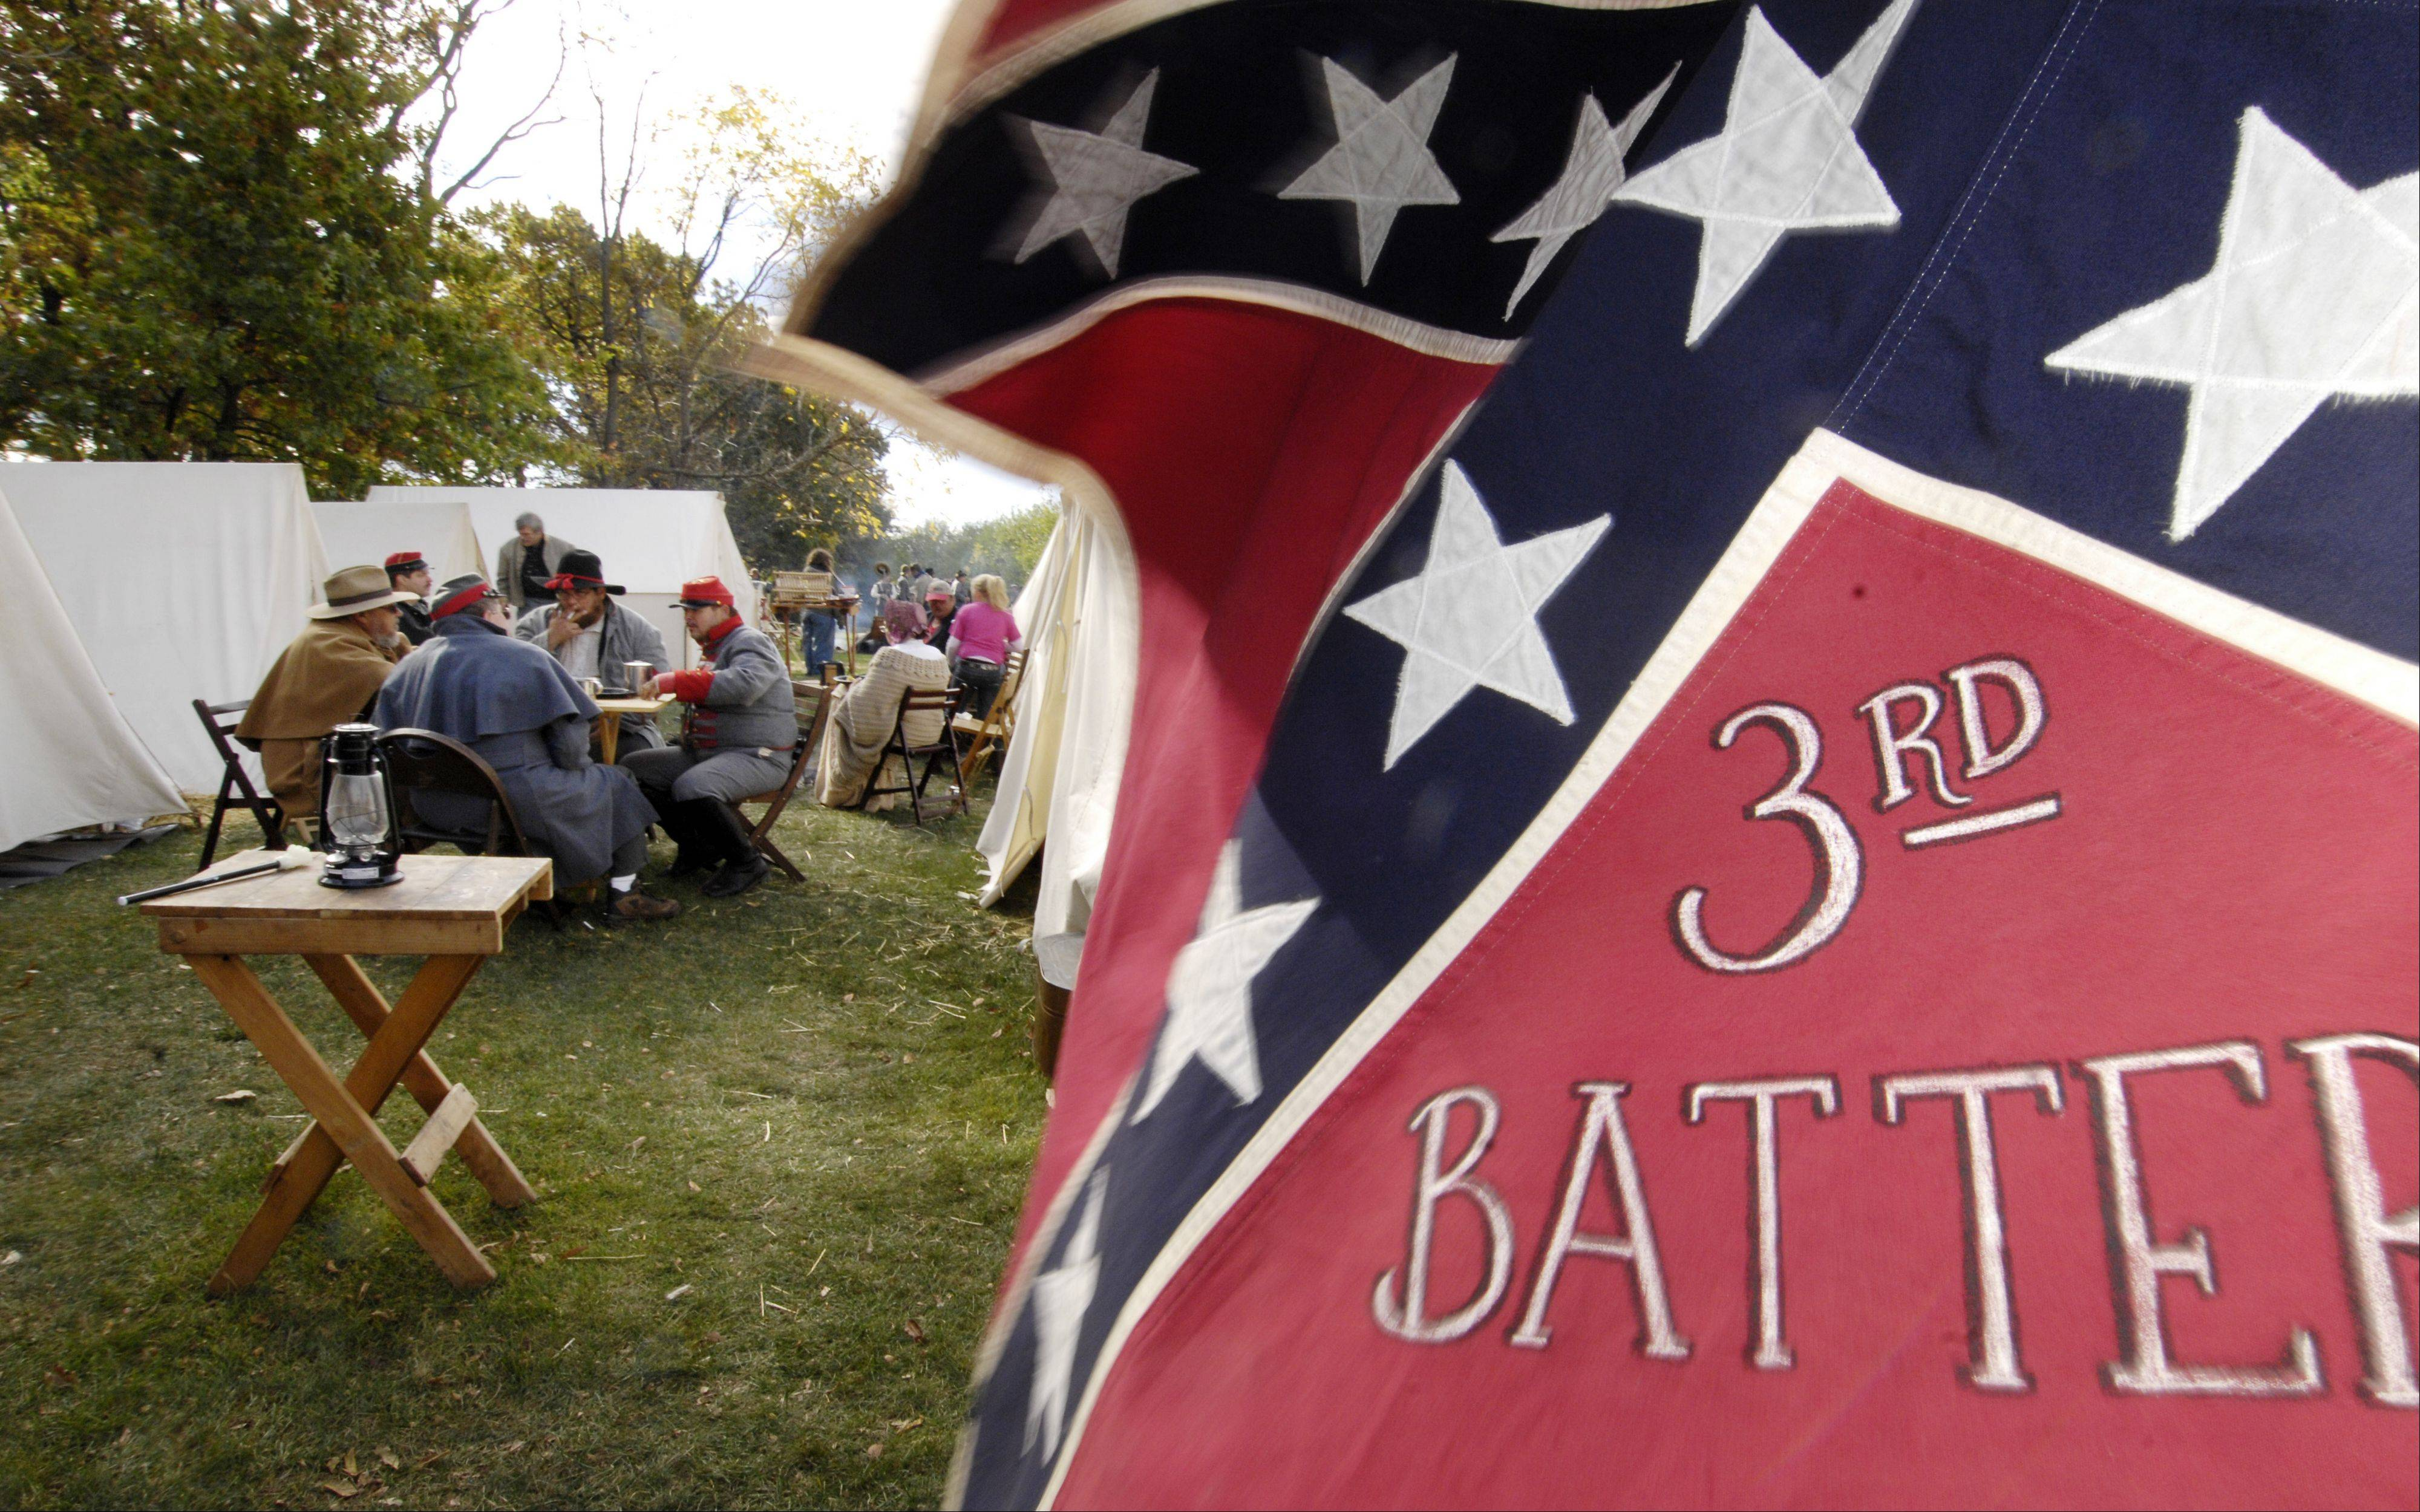 The Richmond 3rd Battery eats breakfast in the Civil War re-enactors camp Sunday at Cantigny Park in Wheaton.